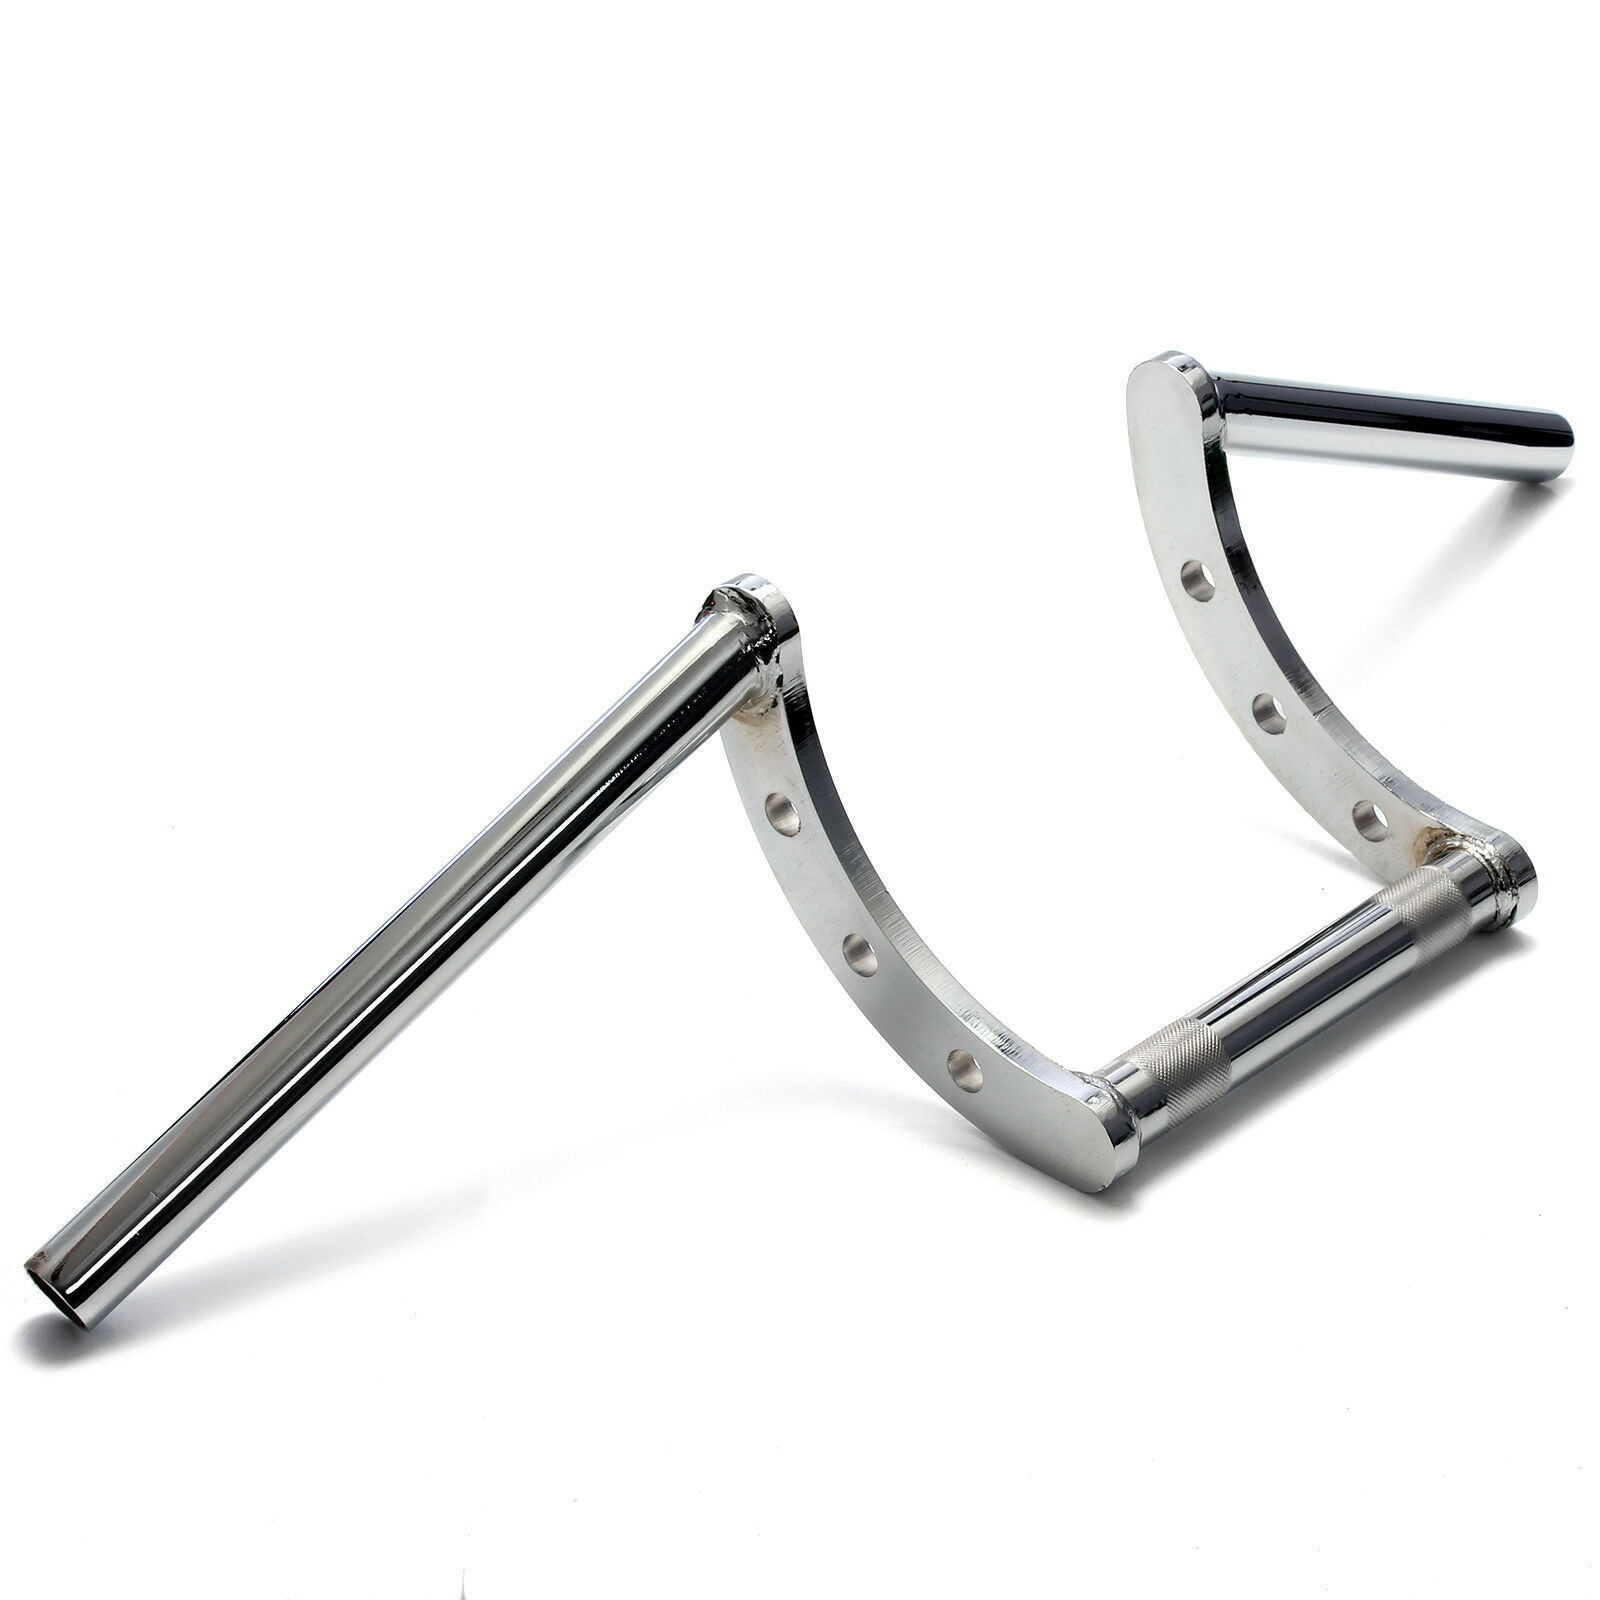 Universal Motorcycle Handlebar 7/8'' 22mm Z Drag Bars Pullback Handle bar Dirt bike Dual Sport bike Cruiser Bobber Chopper